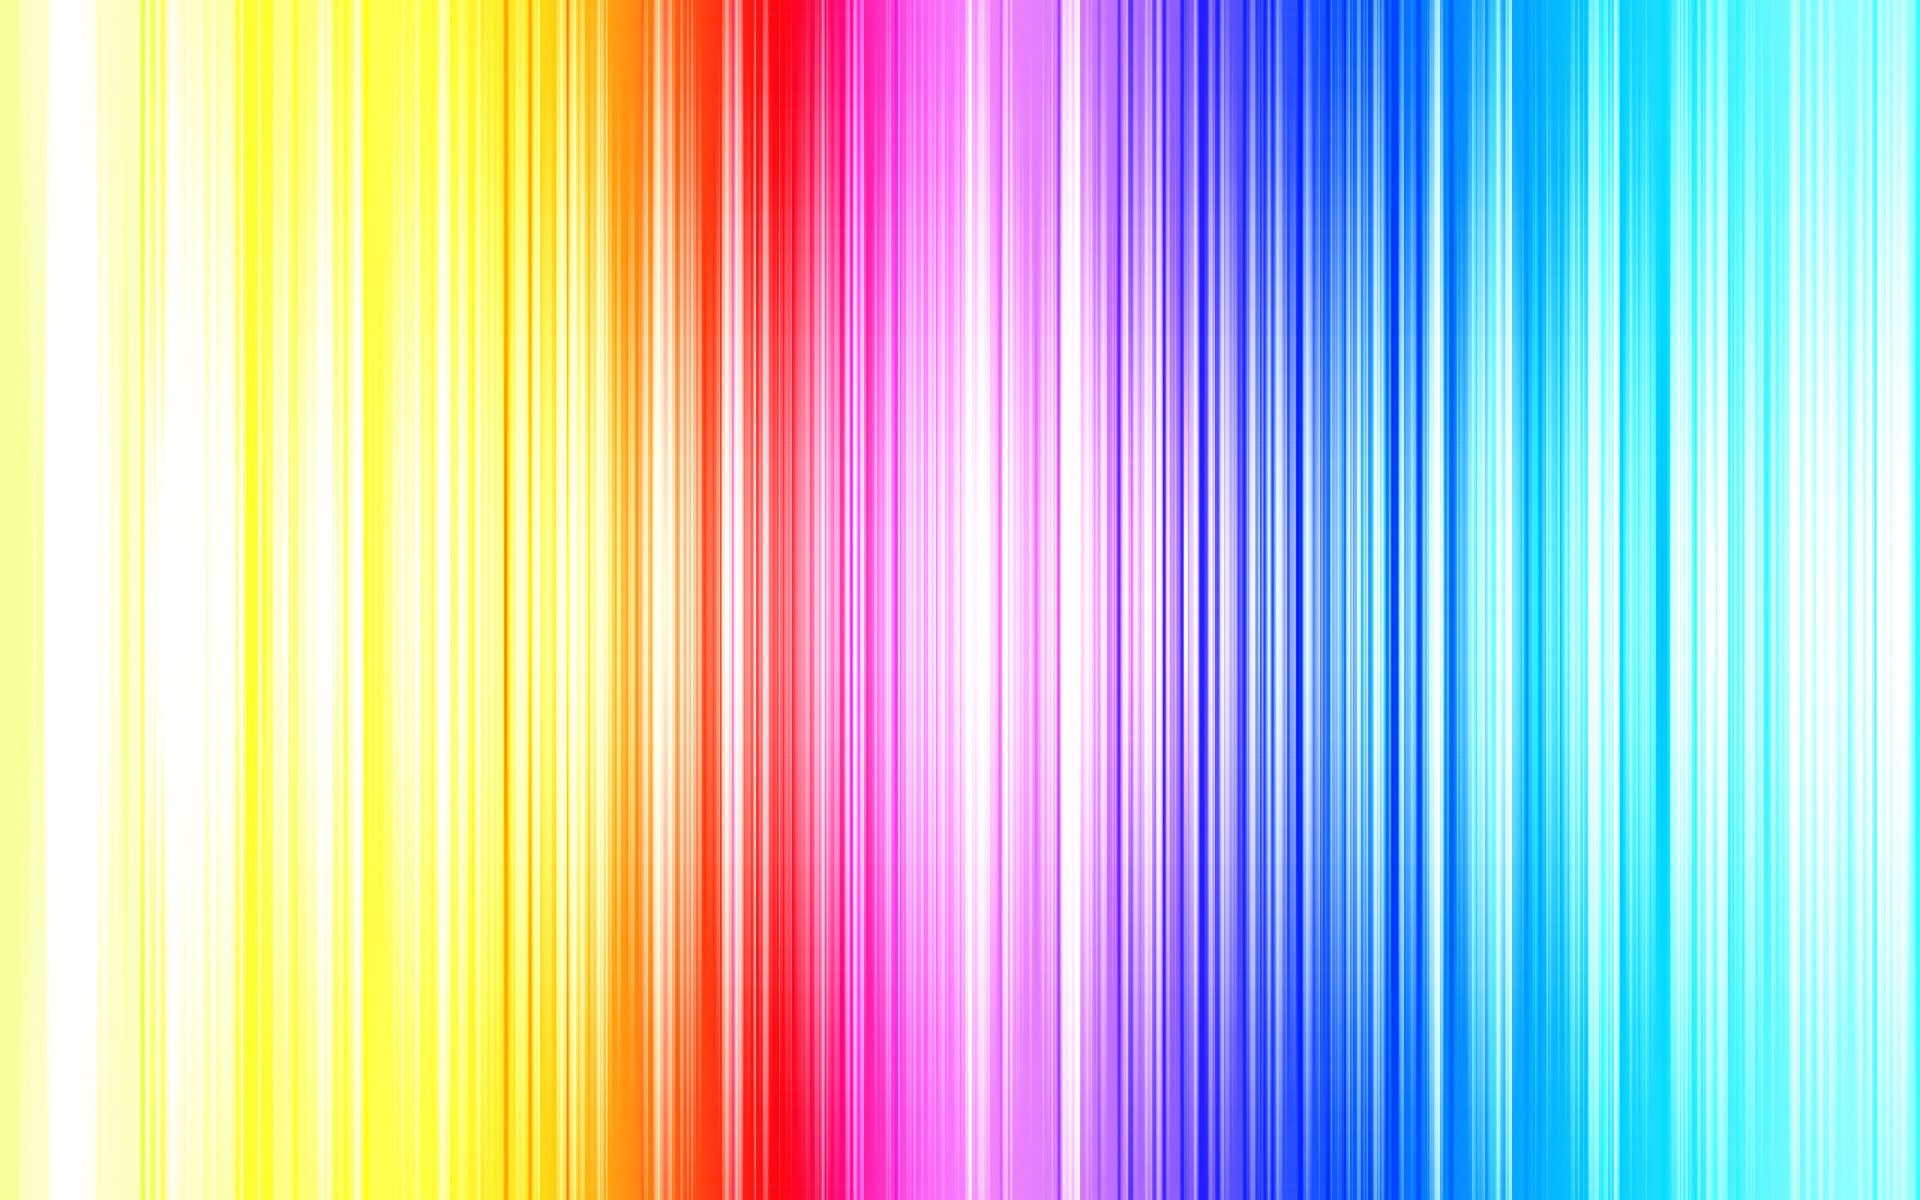 Background color clipart #5